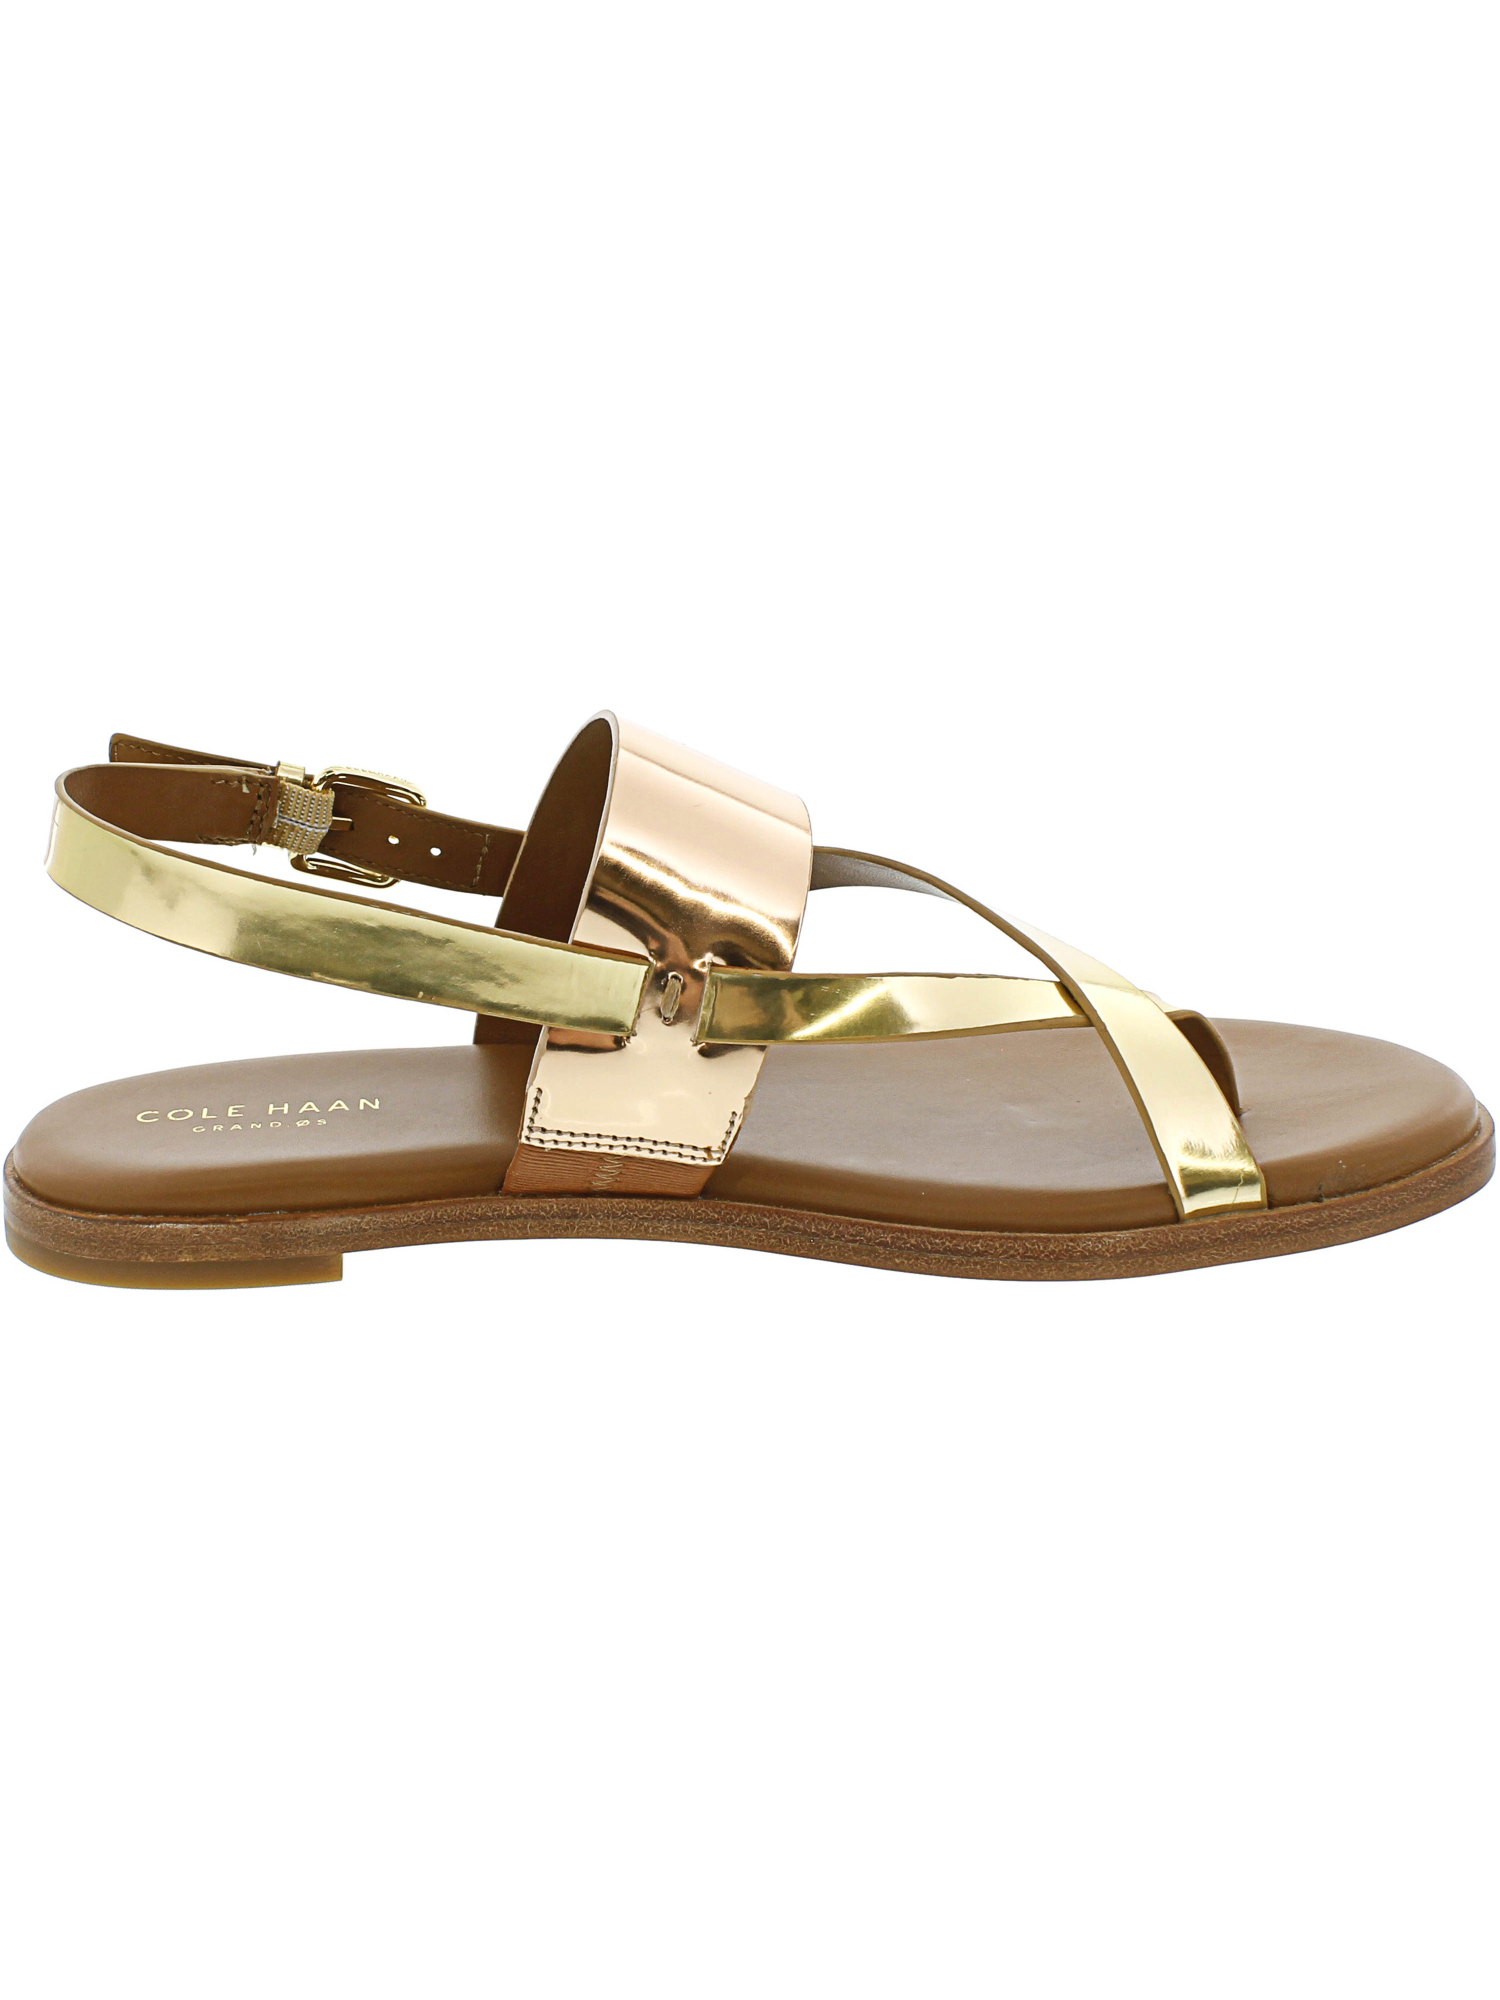 1126c7814e77 Cole Haan Women s Anica Thong Sandal Ankle-High Patent Leather